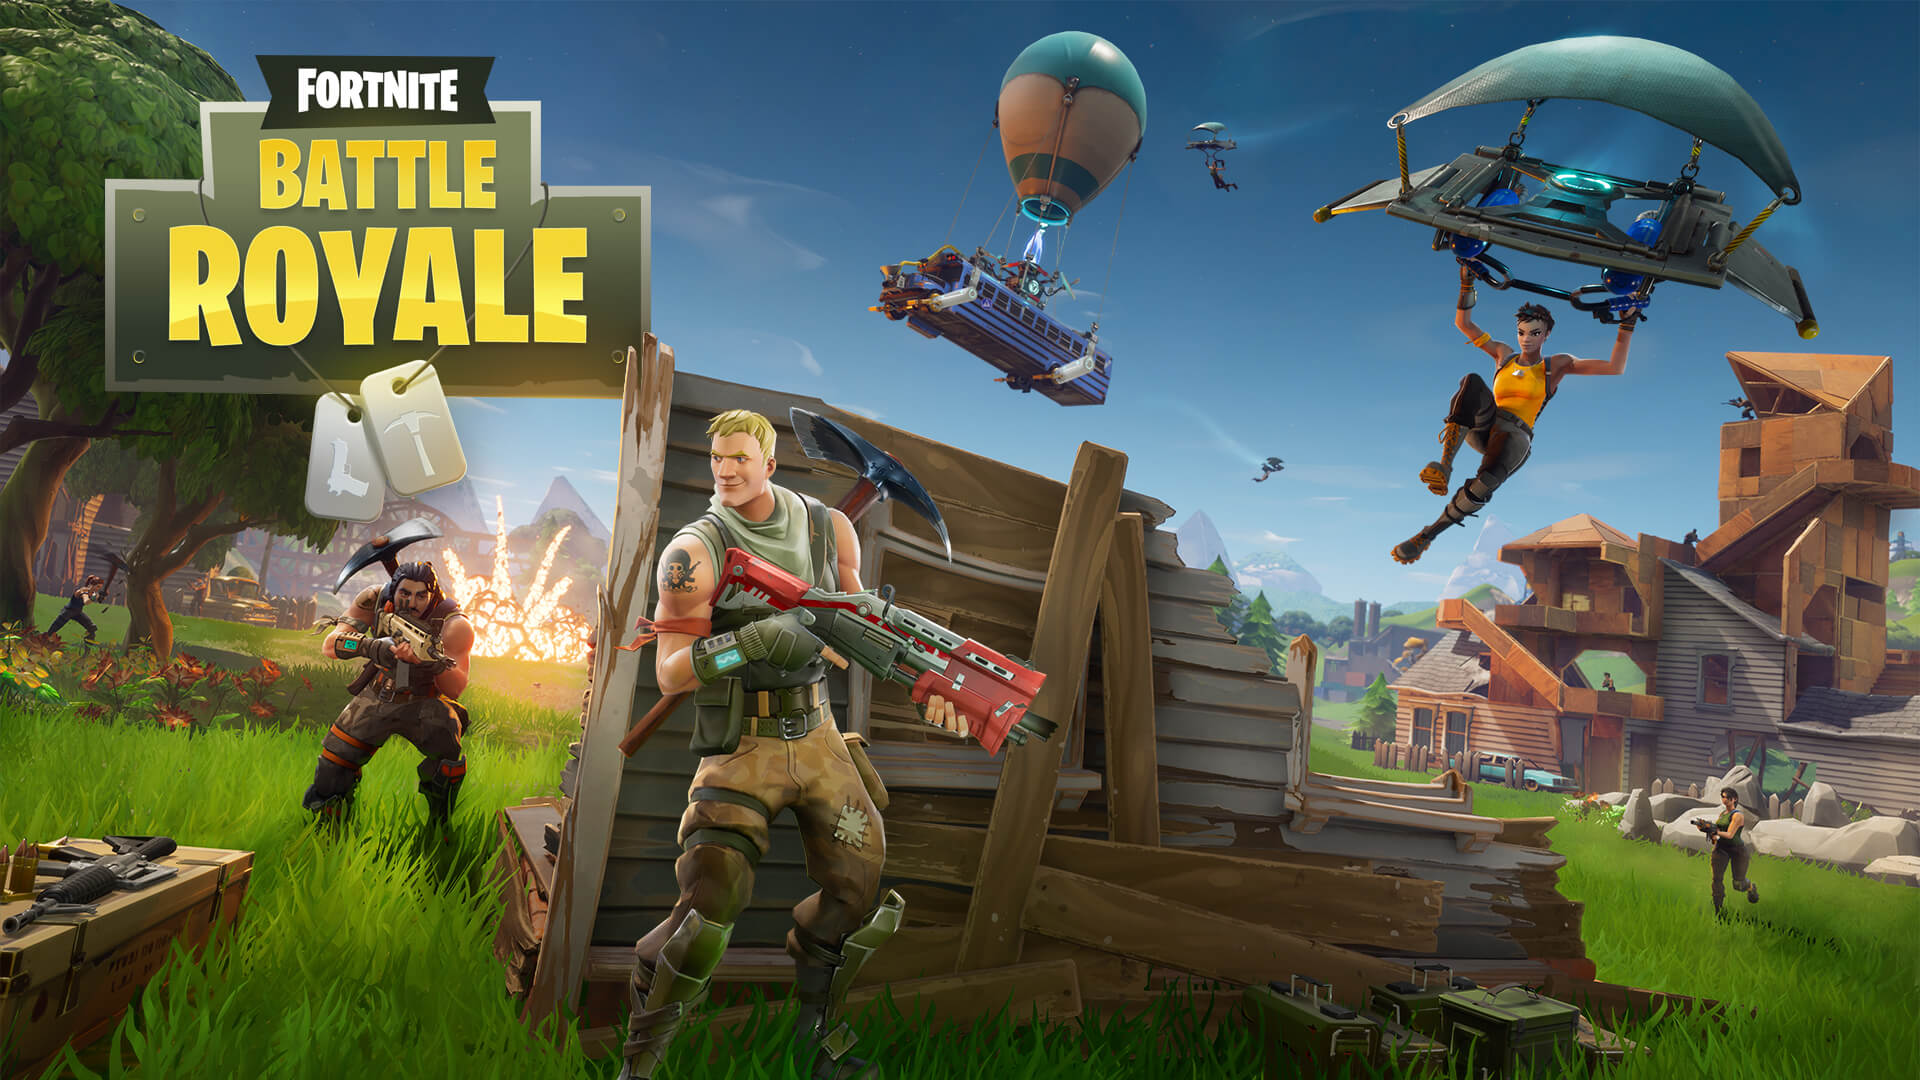 Fortnite Season 10 releases today, will require DirectX 11 GPU, full patch notes